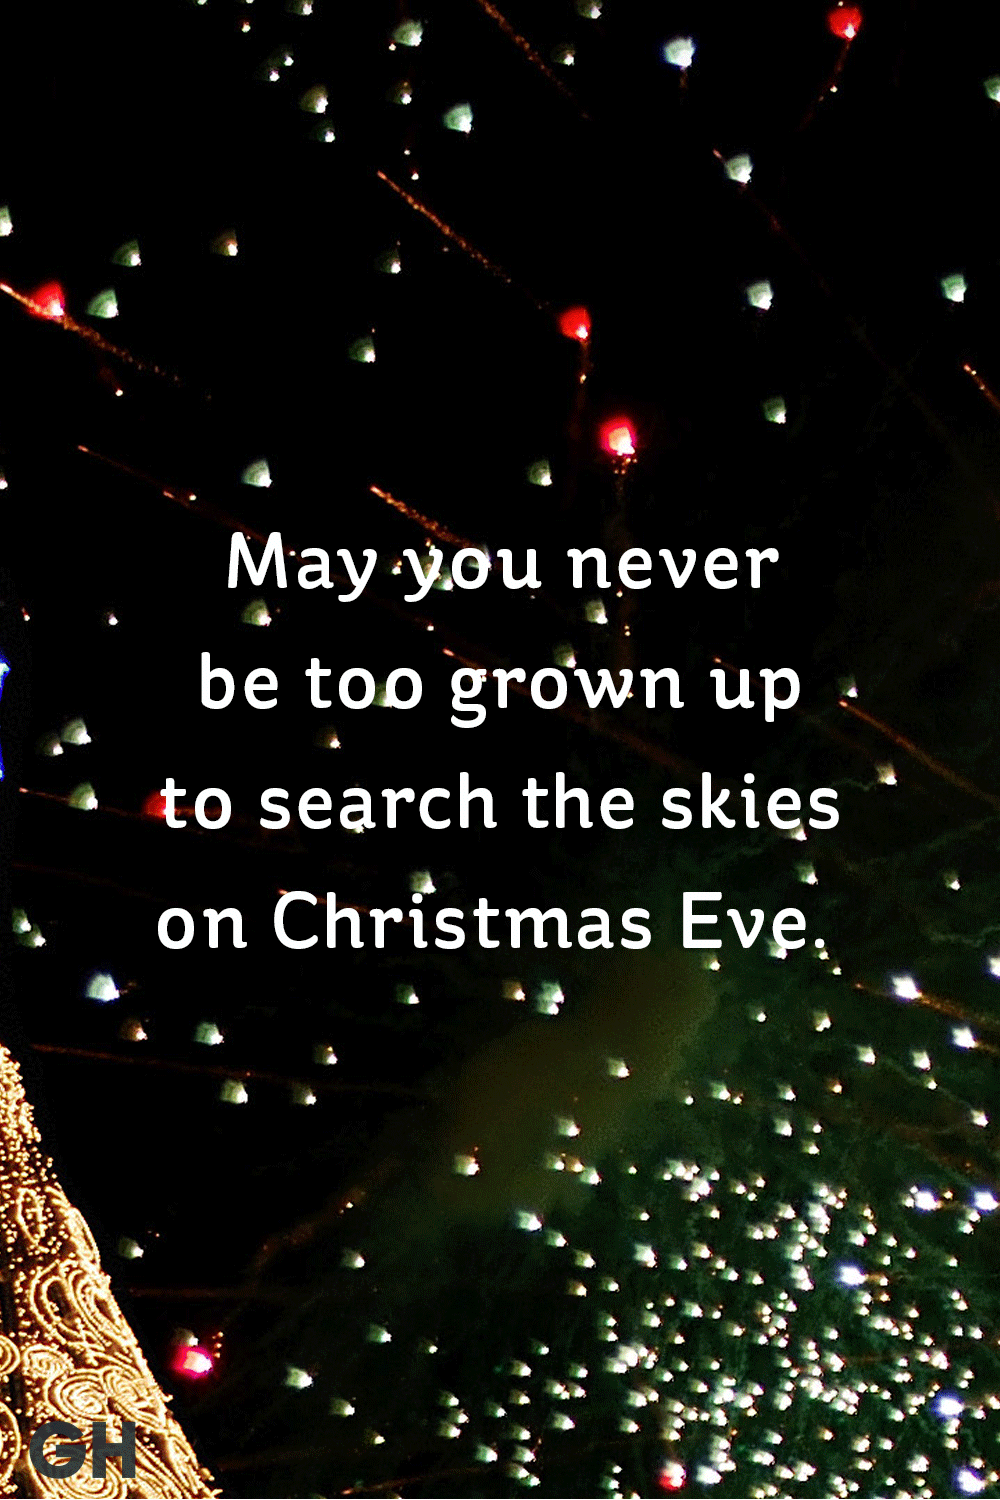 These Festive Christmas Quotes Will Get You in the Holiday Spirit